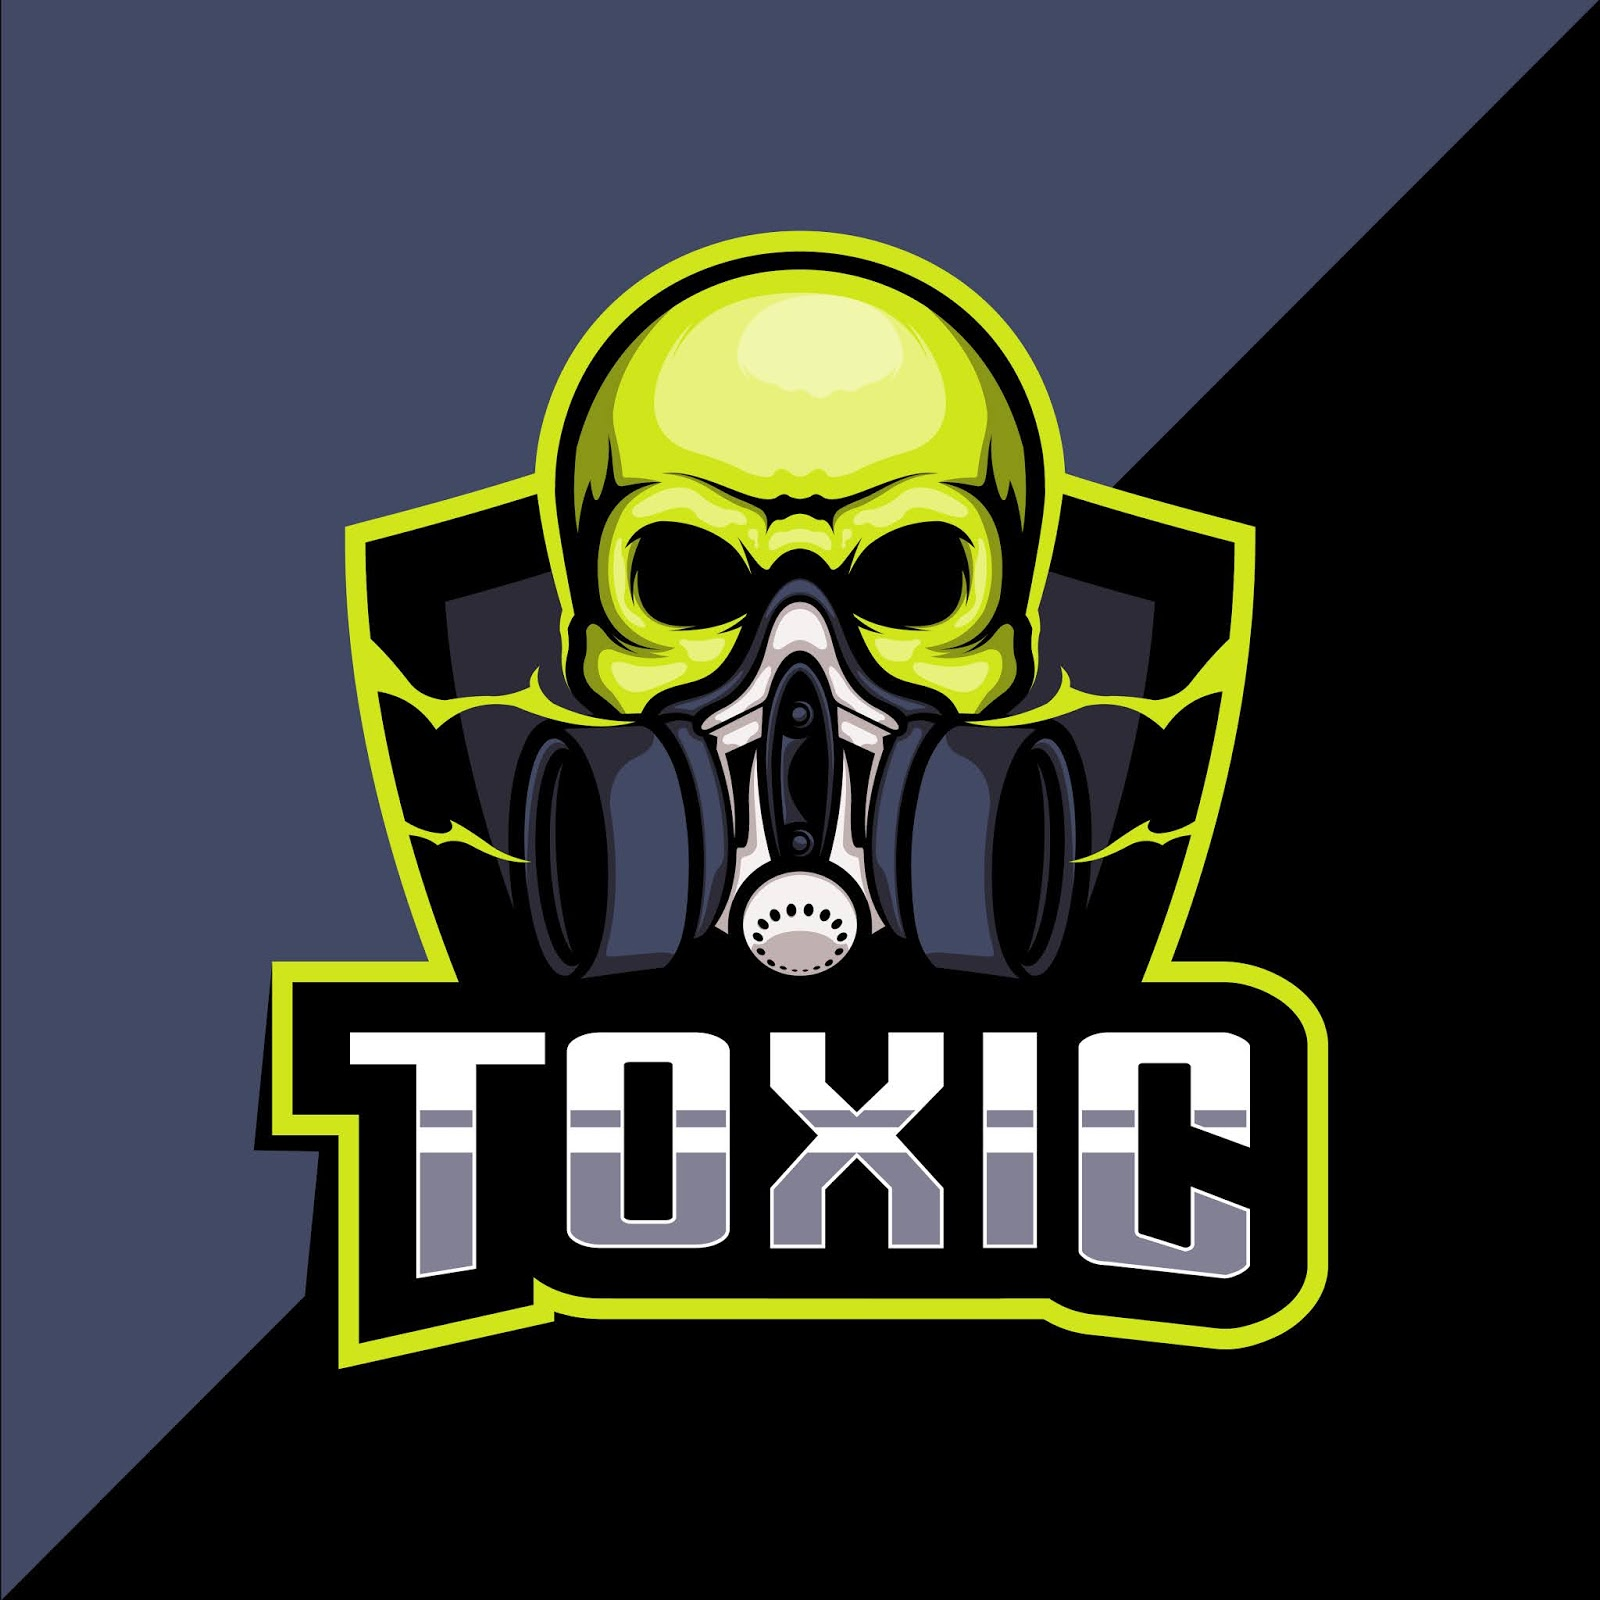 Toxic Mask Esport Logo Design Free Download Vector CDR, AI, EPS and PNG Formats